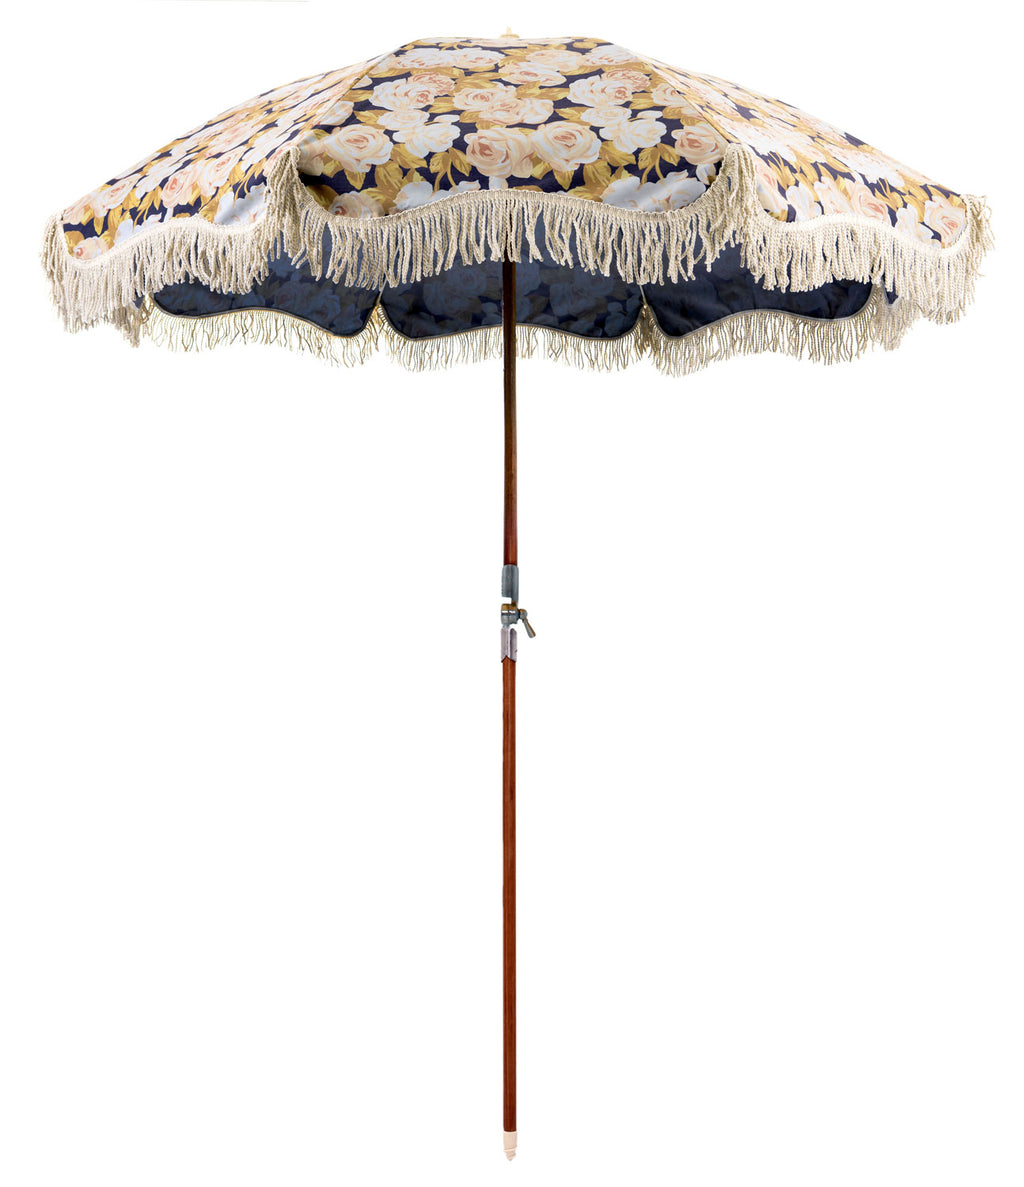 The Premium Beach Umbrella - Faded Rose